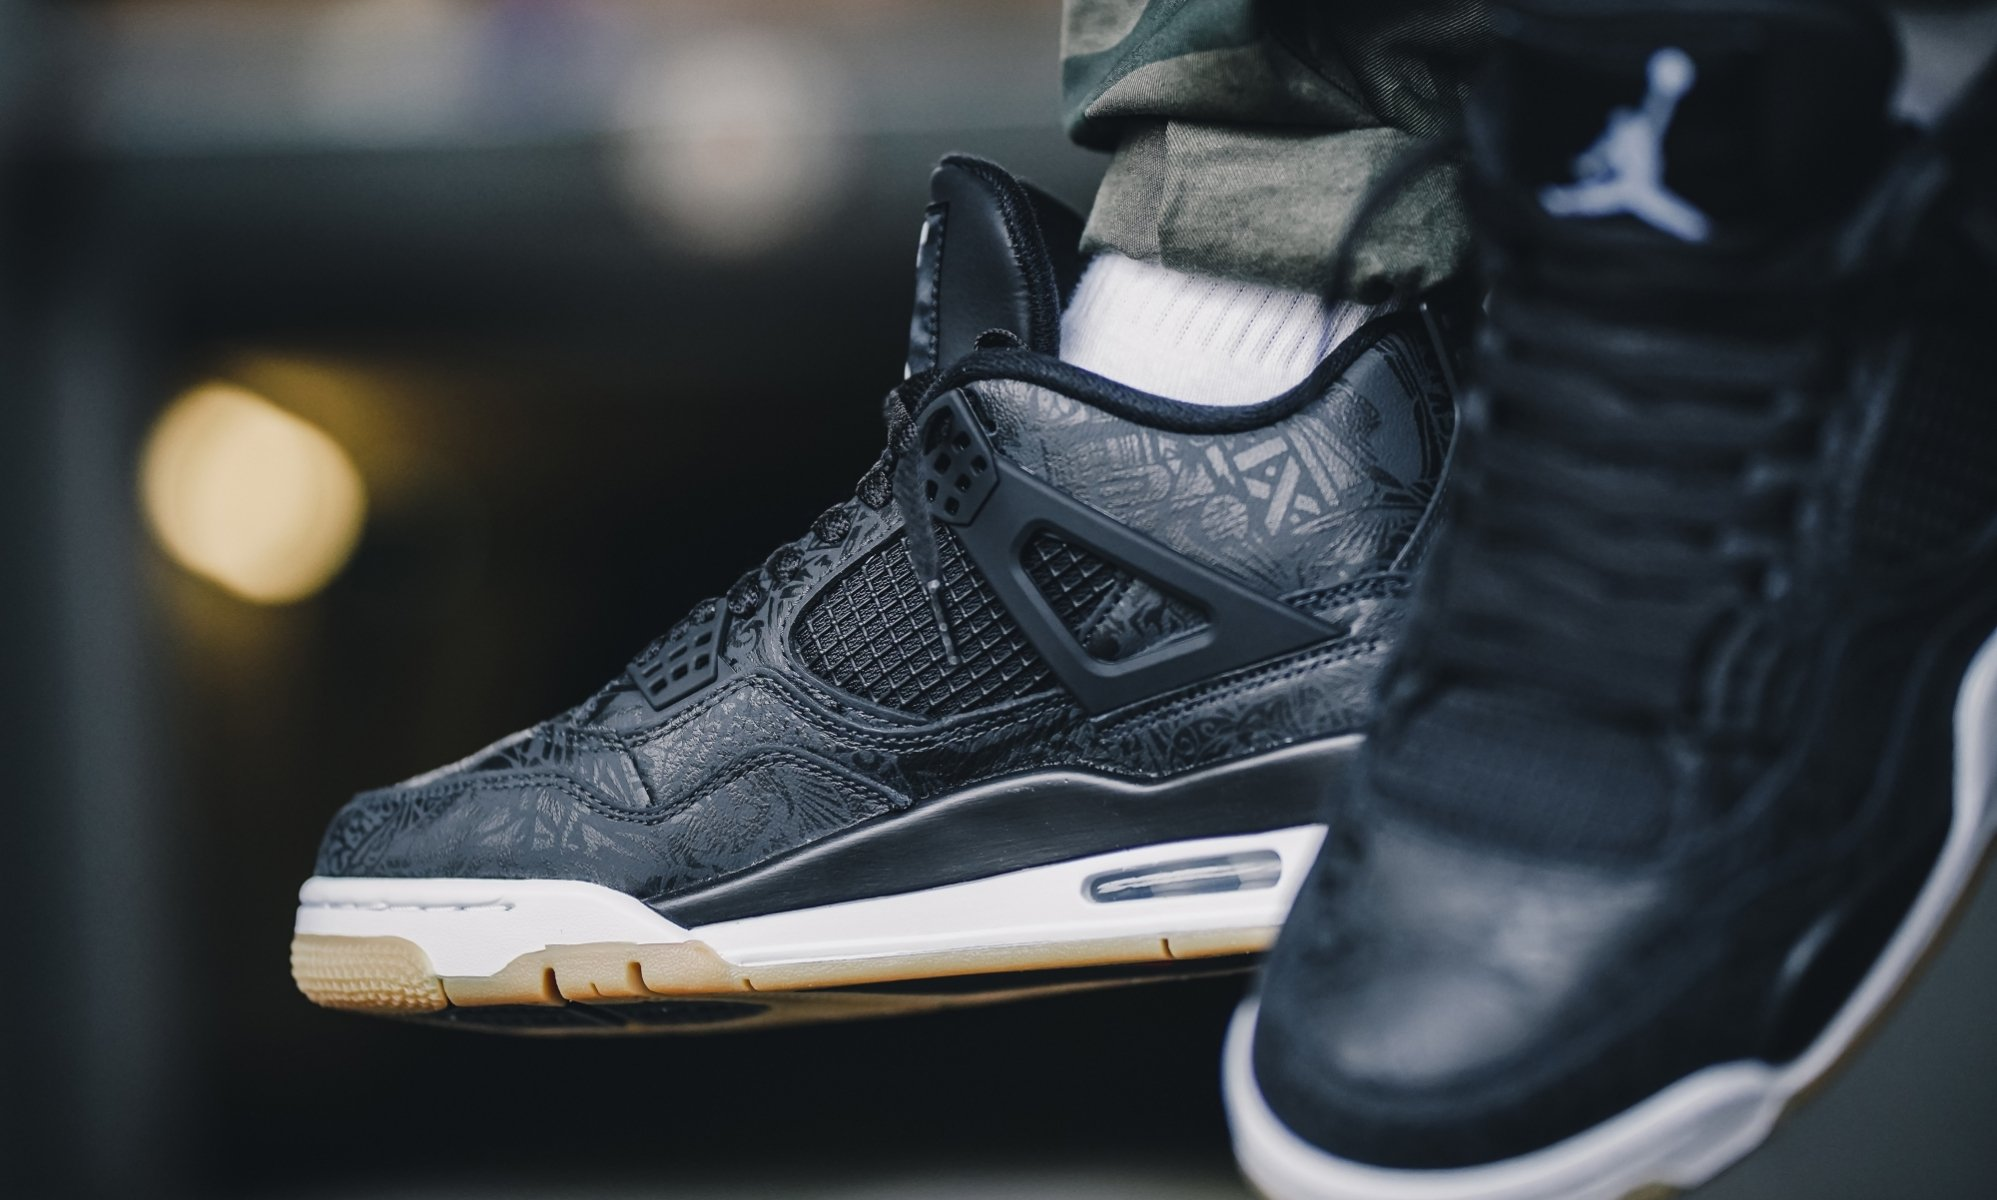 nike-air-jordan-4-black-gum-light-brown-white-CI1184-001-release-20190127